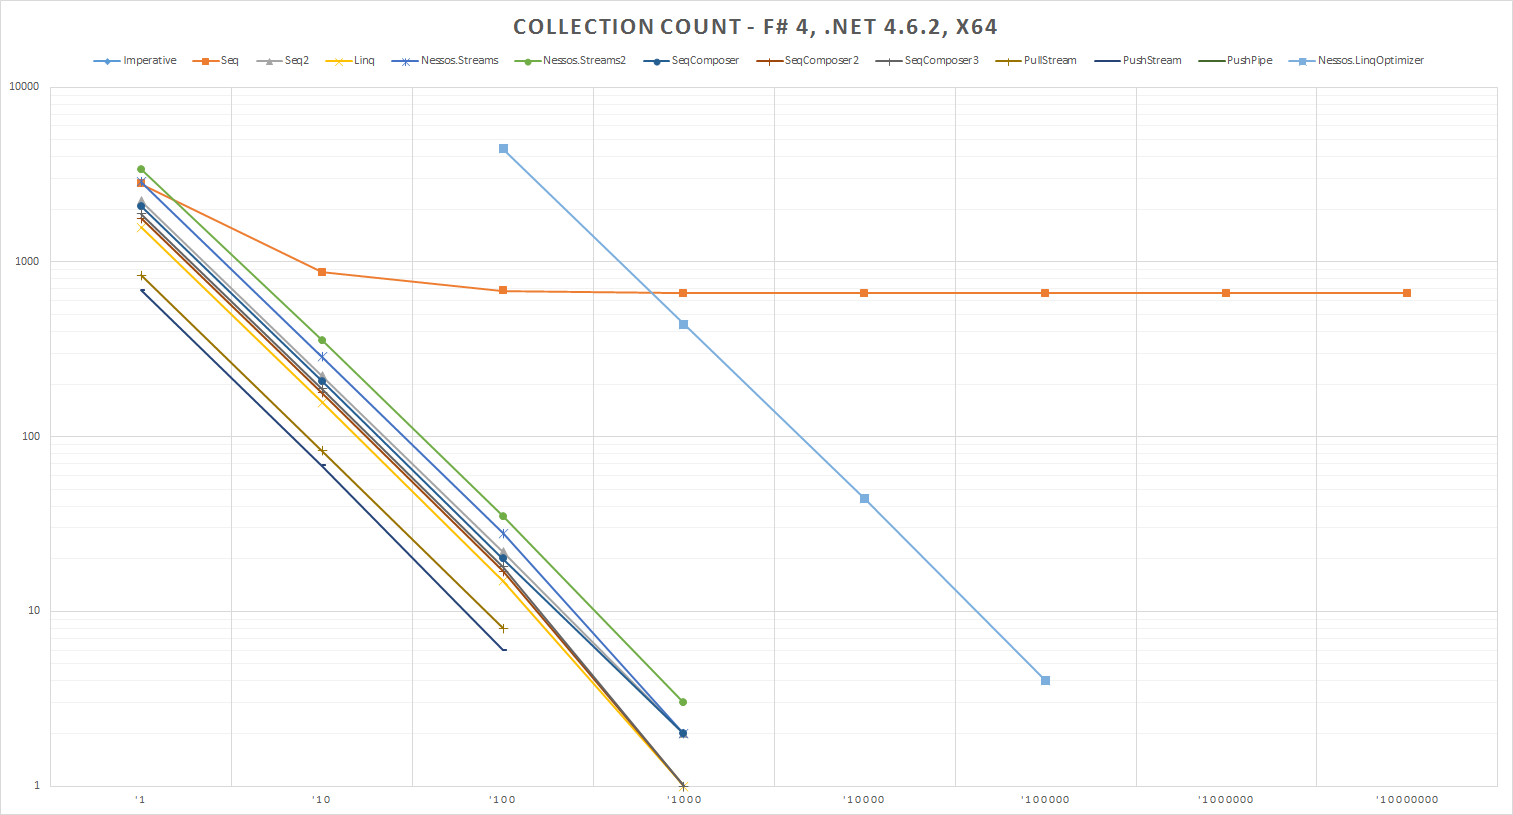 Collection Count - F# 4, .NET 4.6.2, x64